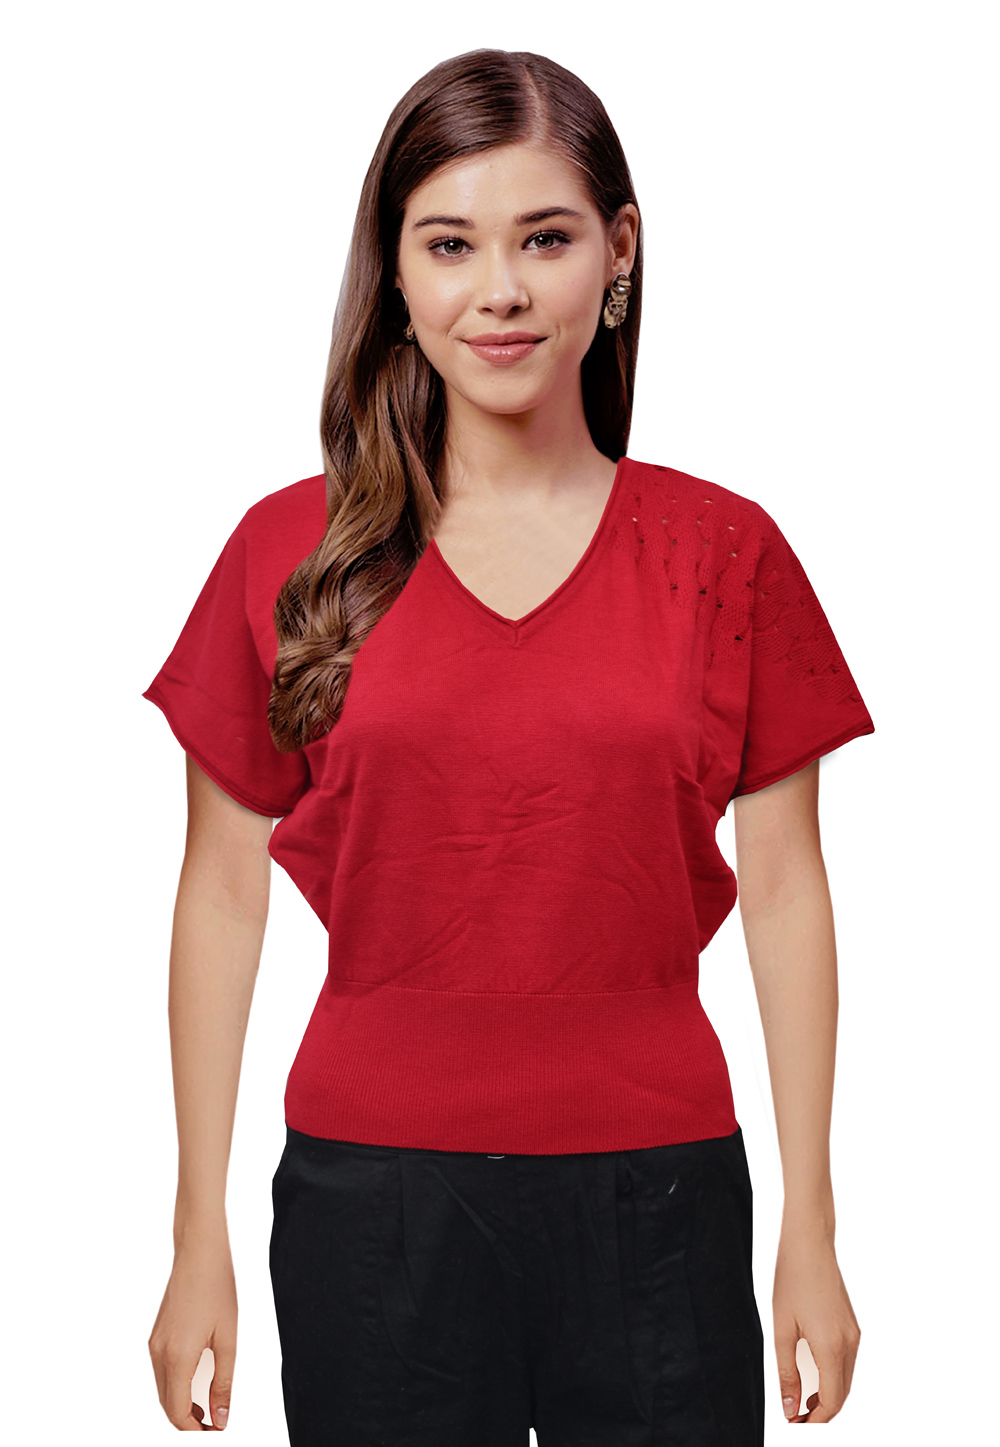 Red Woolen Knitted Tops 214250